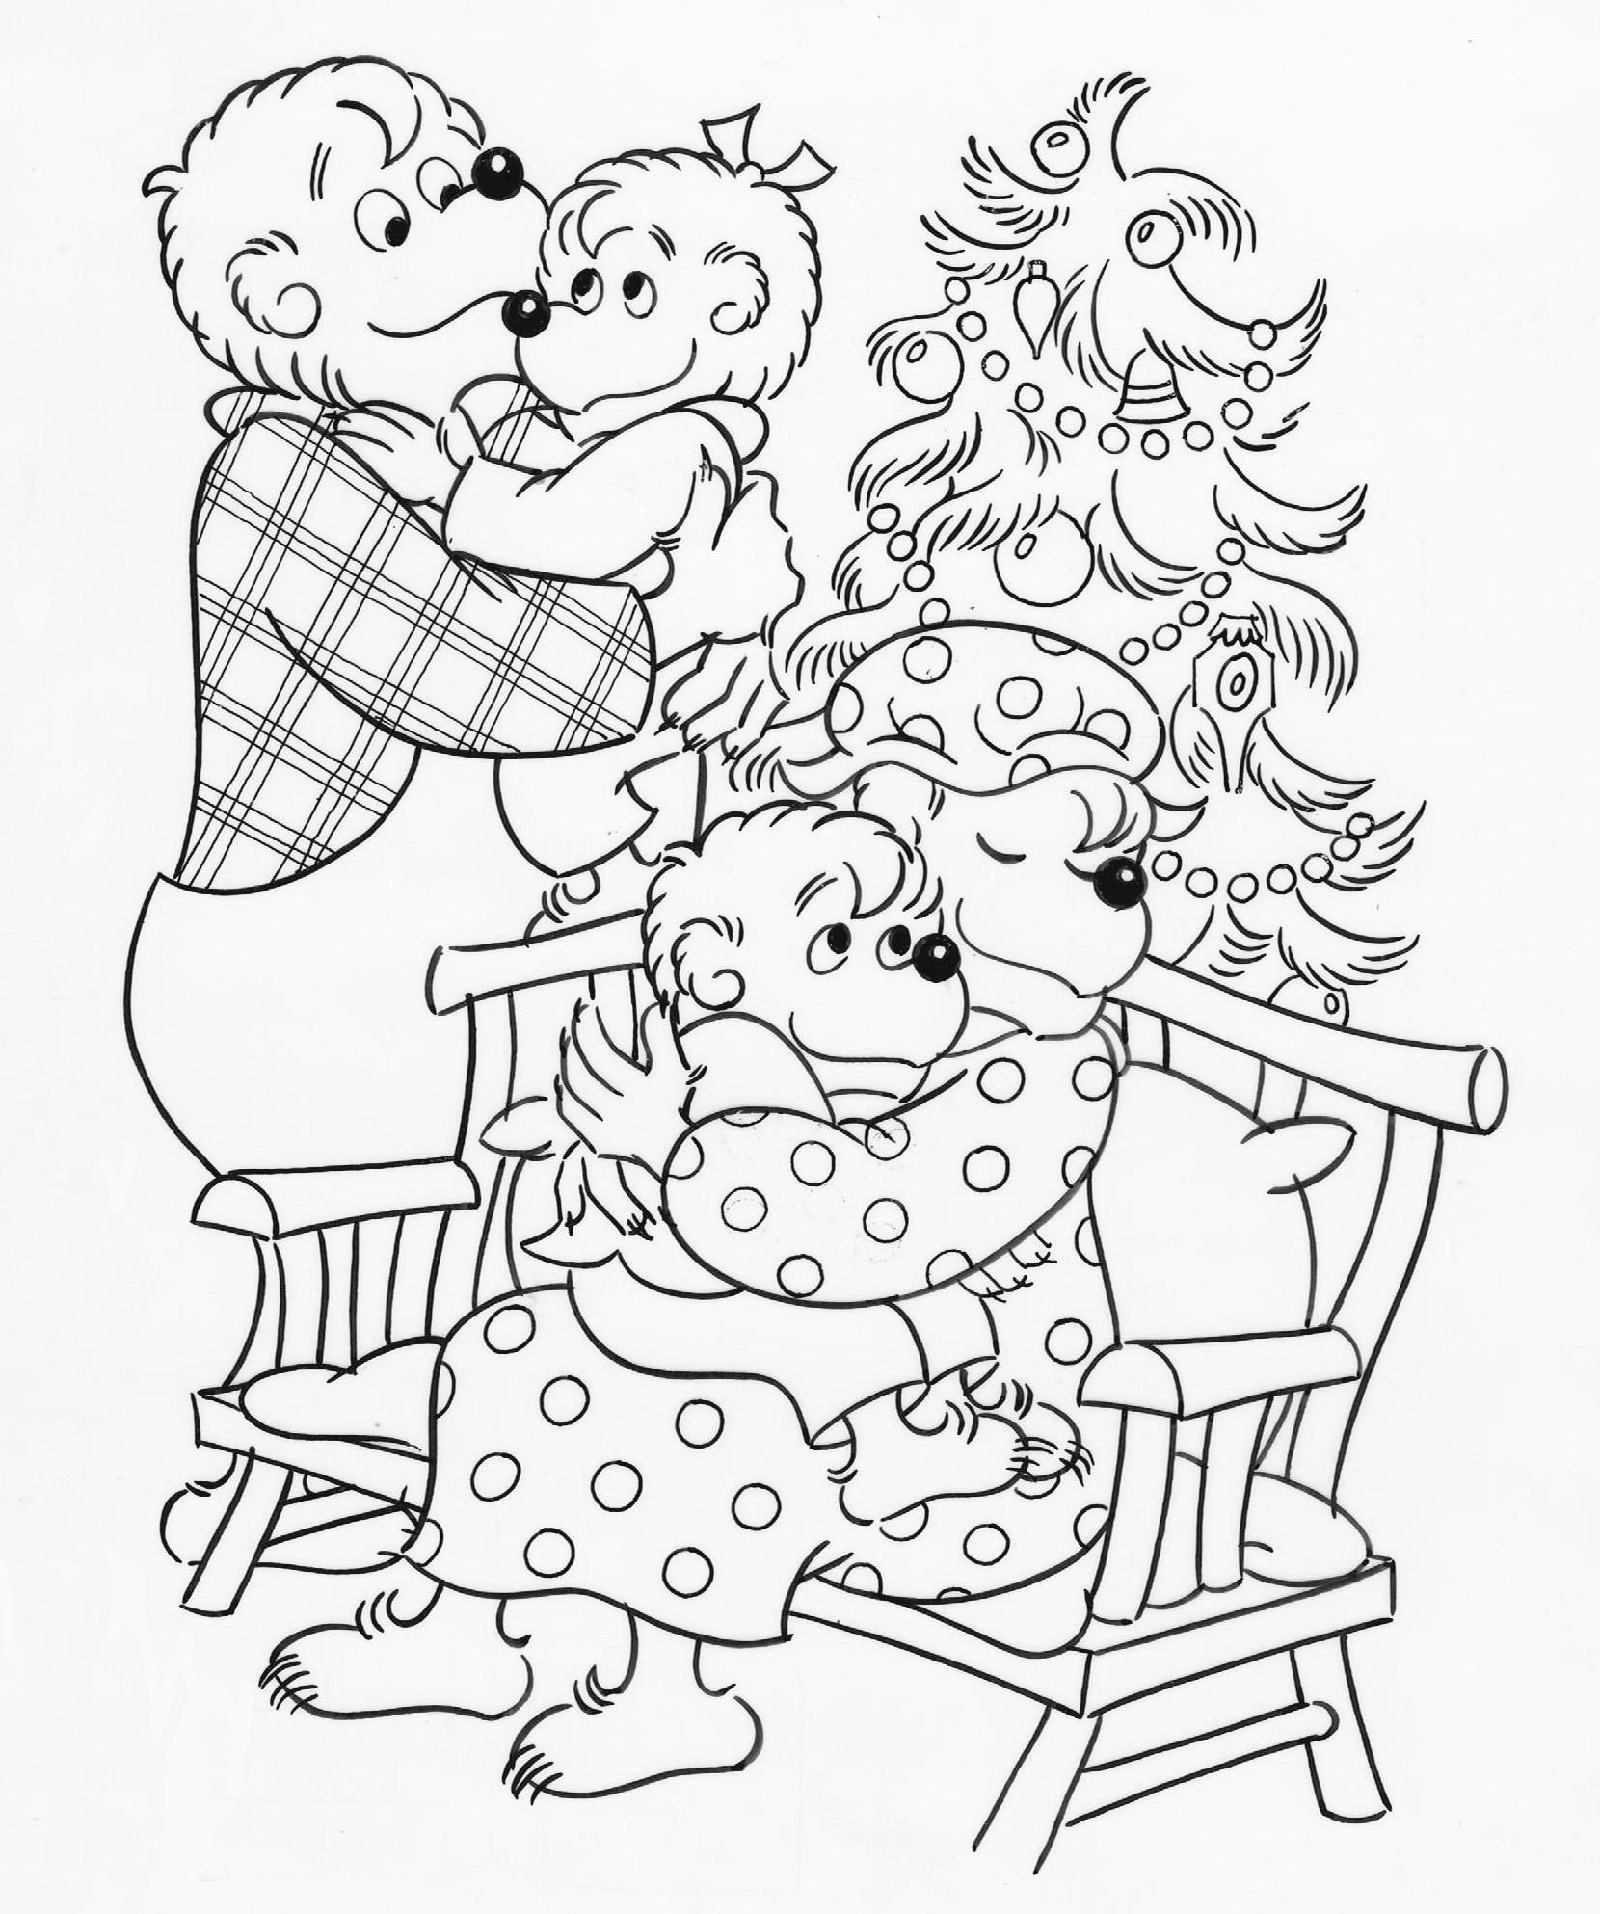 Berenstain Bears Coloring Pages 3